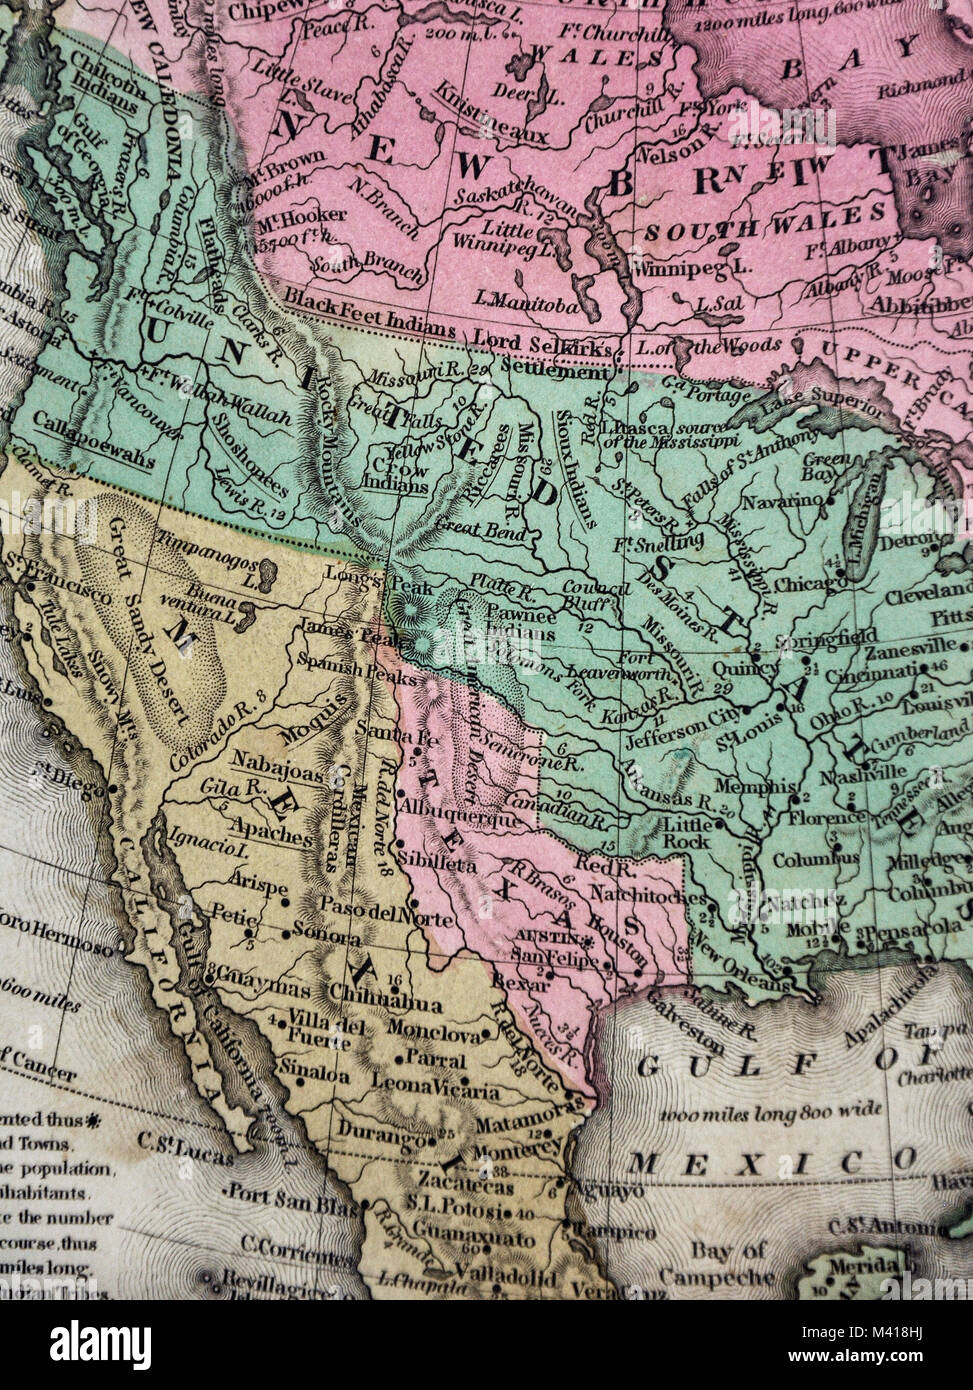 1839 mitchell map republic of texas united states mexico north america